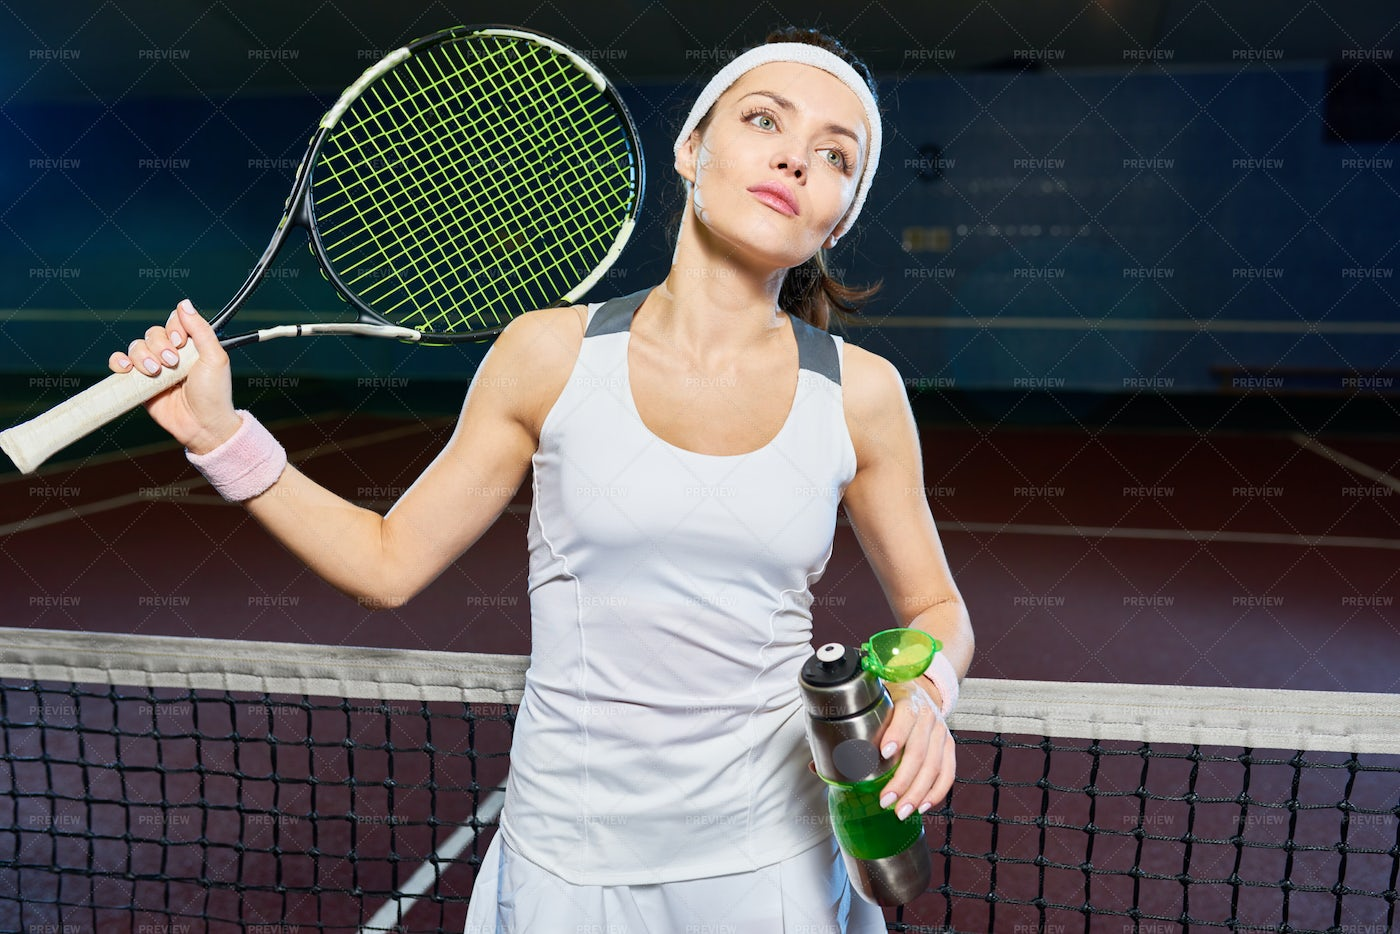 Professional Tennis Player In Court: Stock Photos